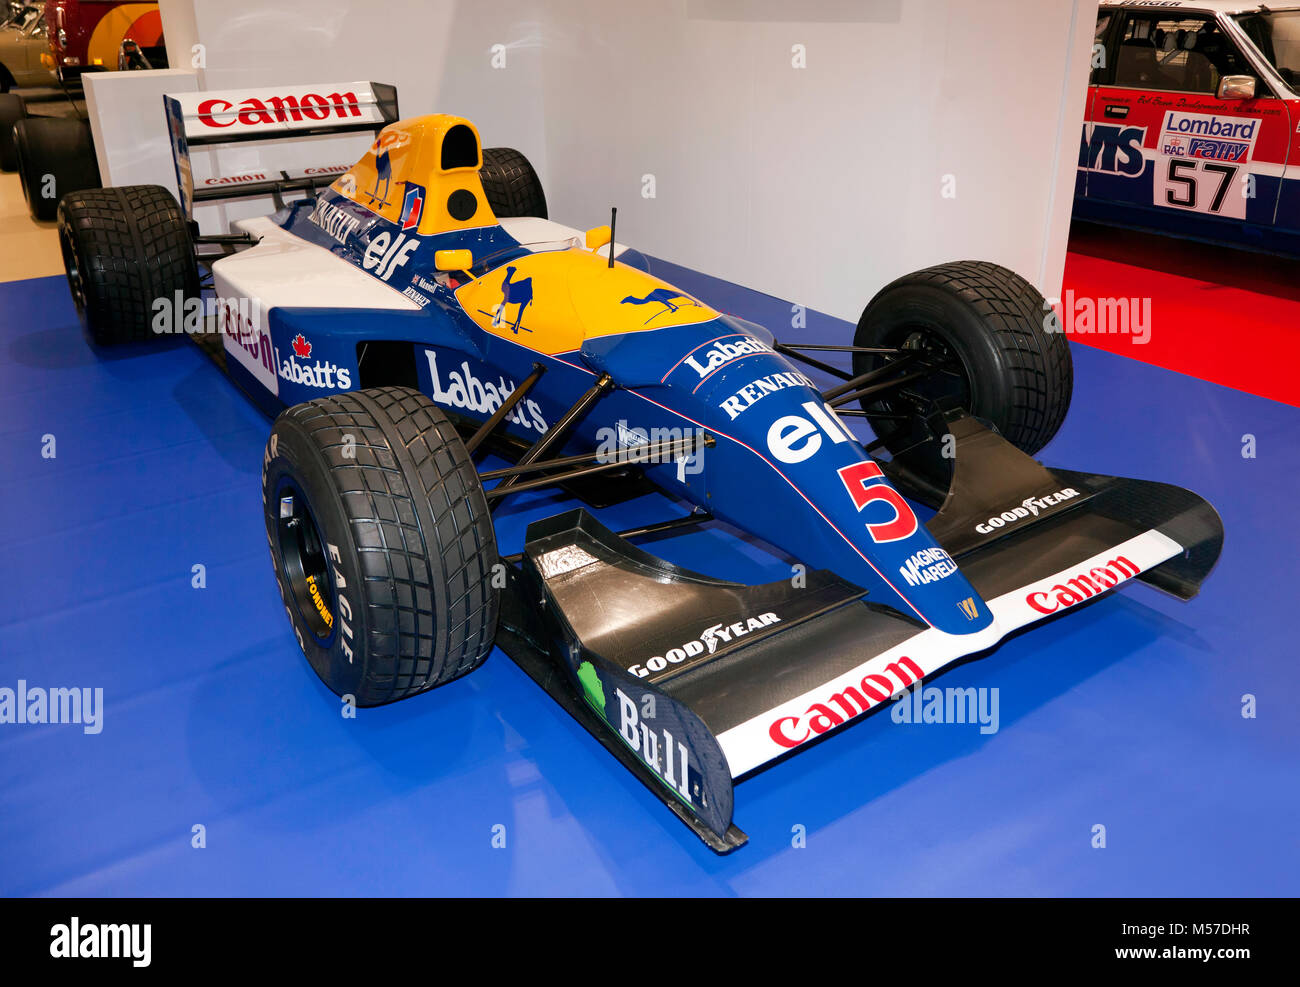 Nigel Mansell's  1992 Williams FW14B  Formula One Car in which he won the Drivers' Championship, on display - Stock Image